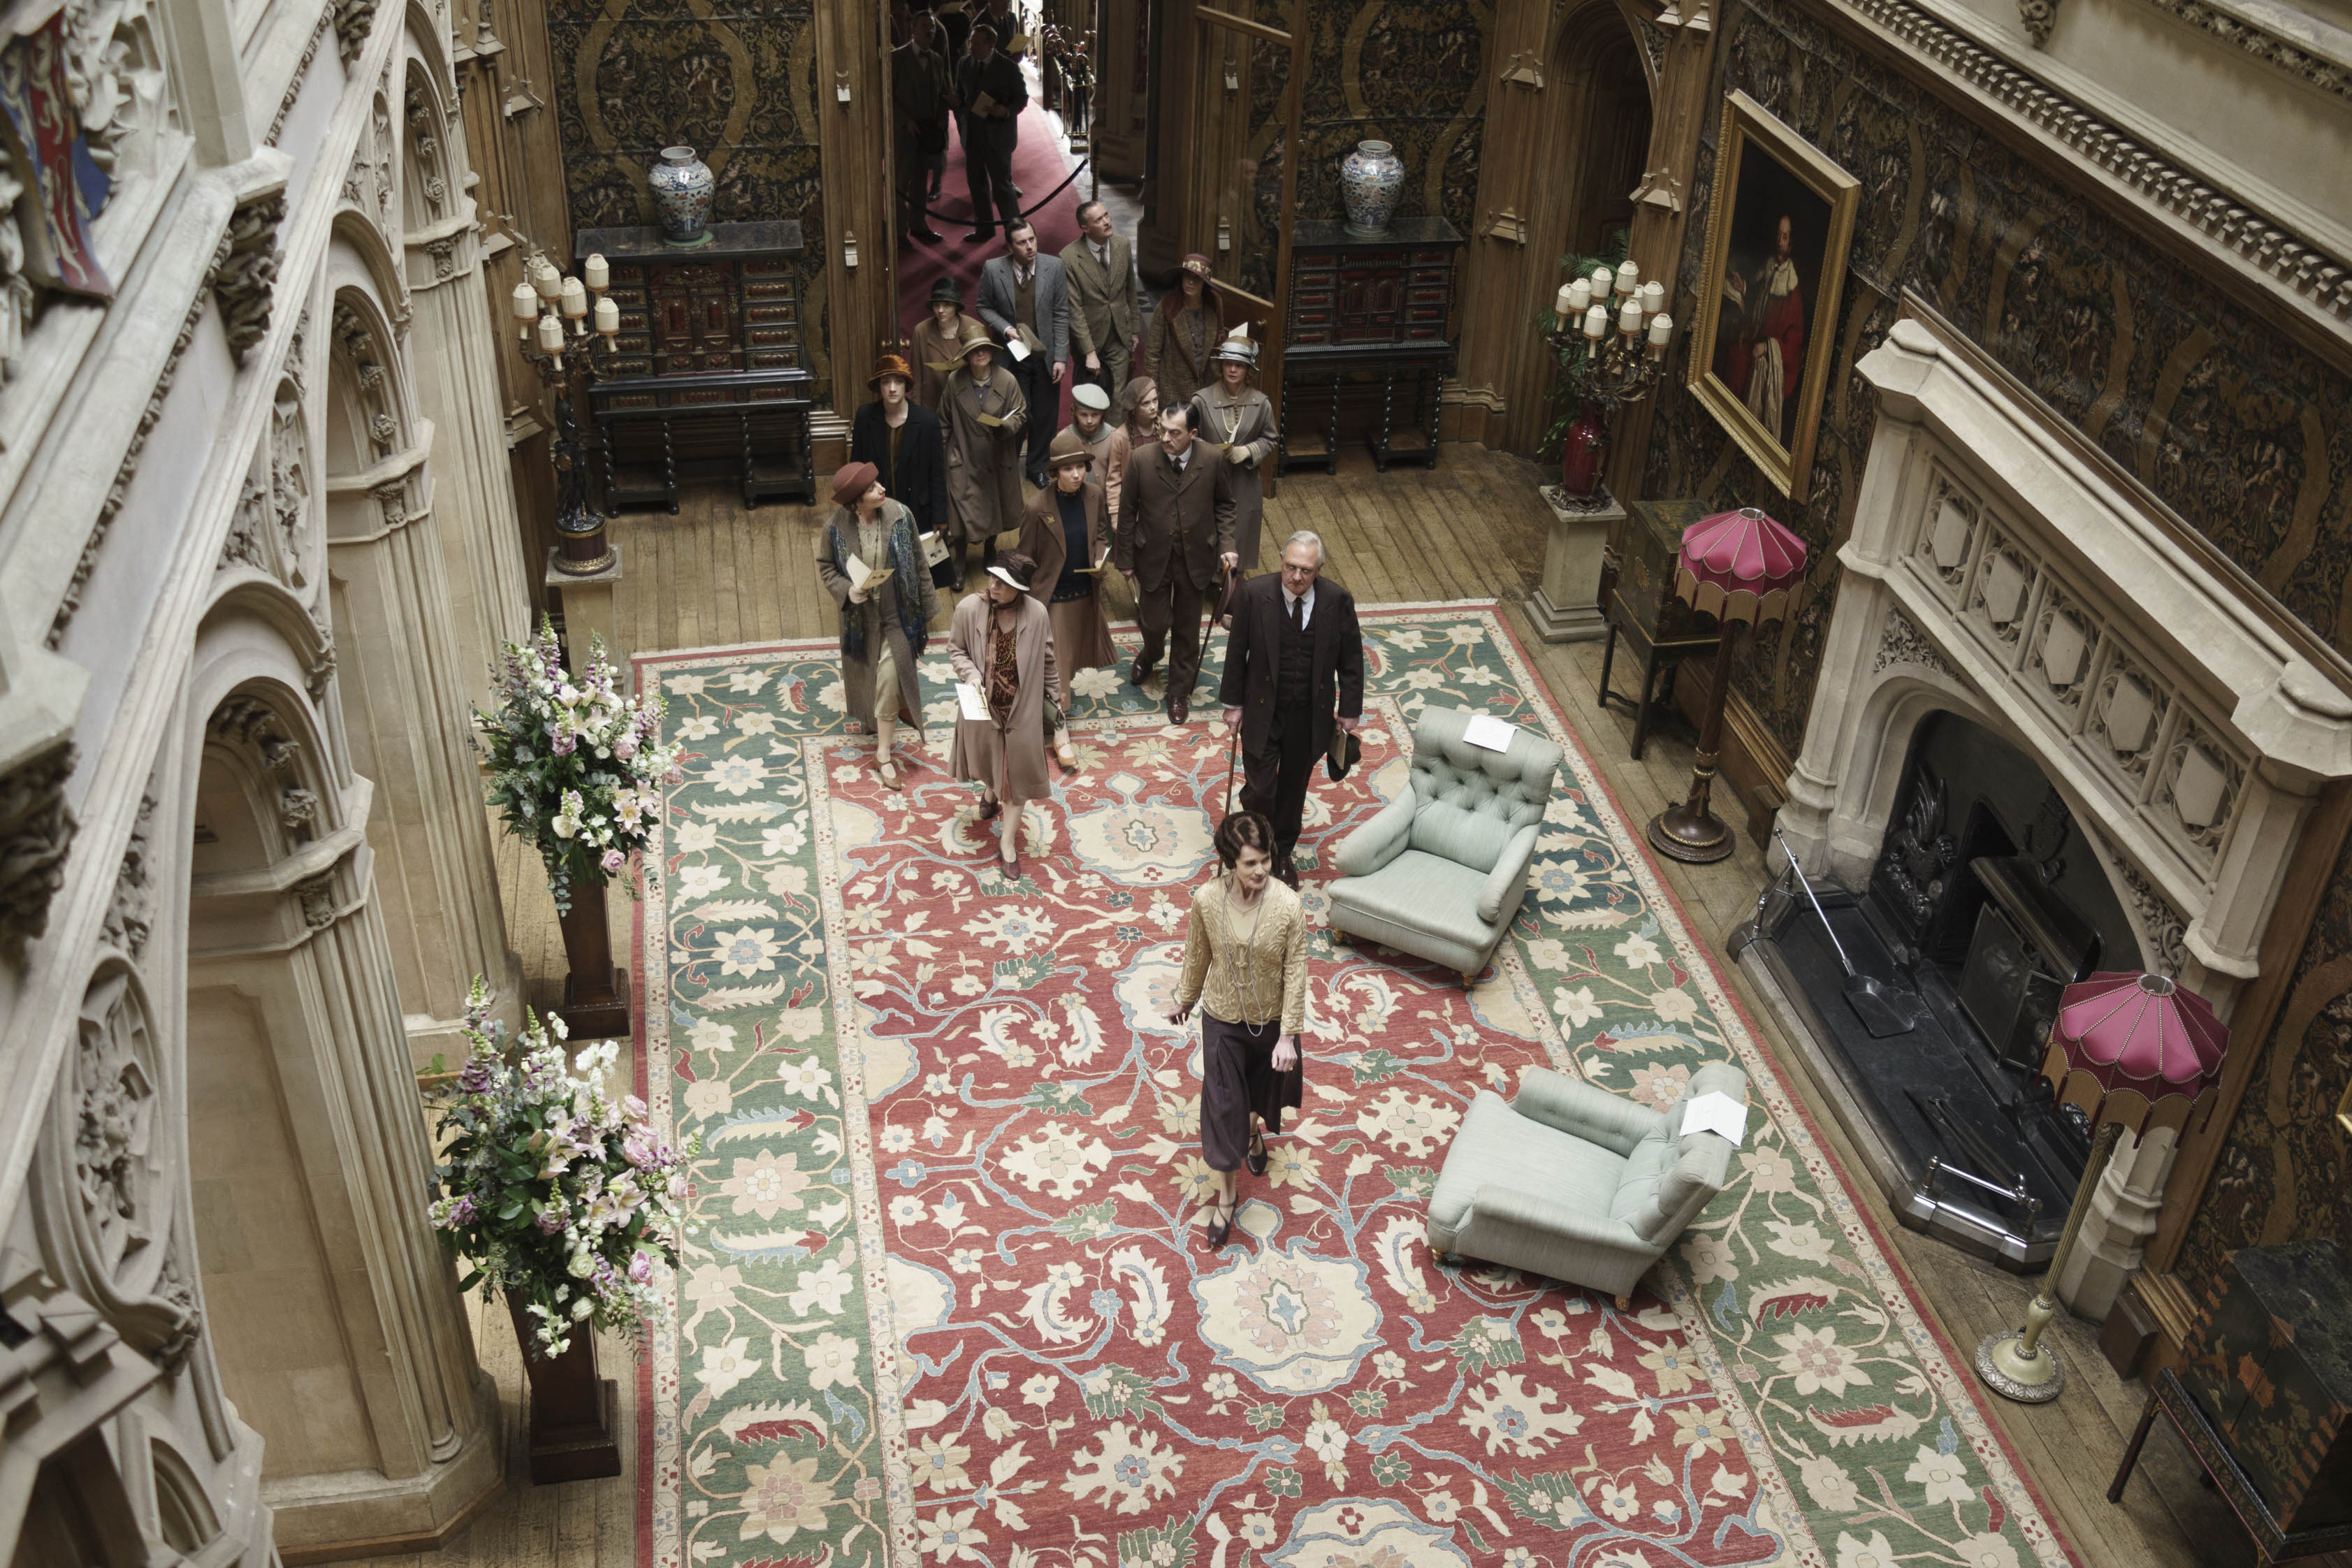 Downton Abbey episode six: Lord Robert is home and the Abbey is open to all